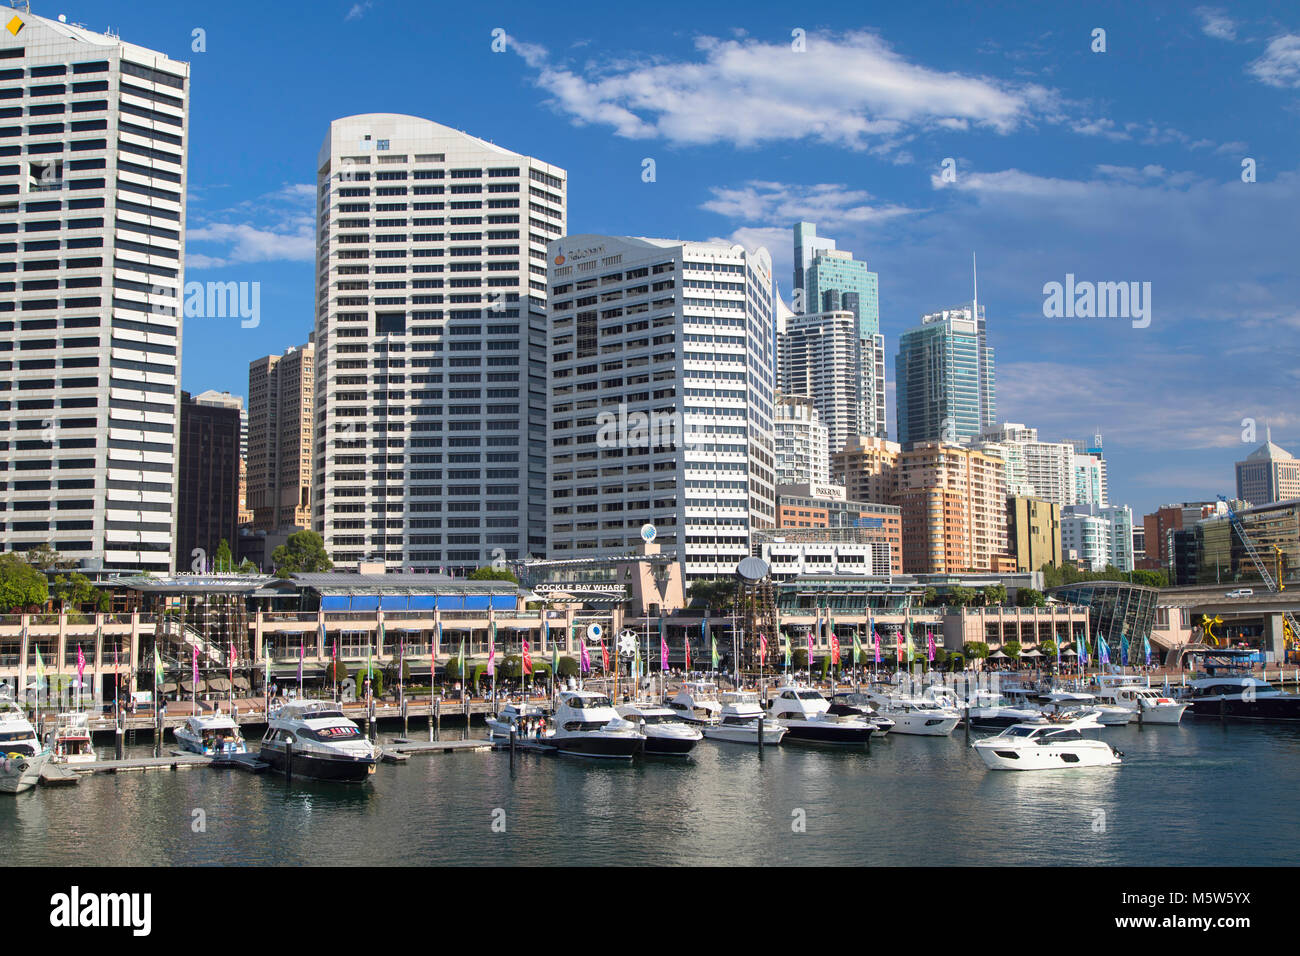 Darling Harbour, Sydney, New South Wales, Australien Stockbild